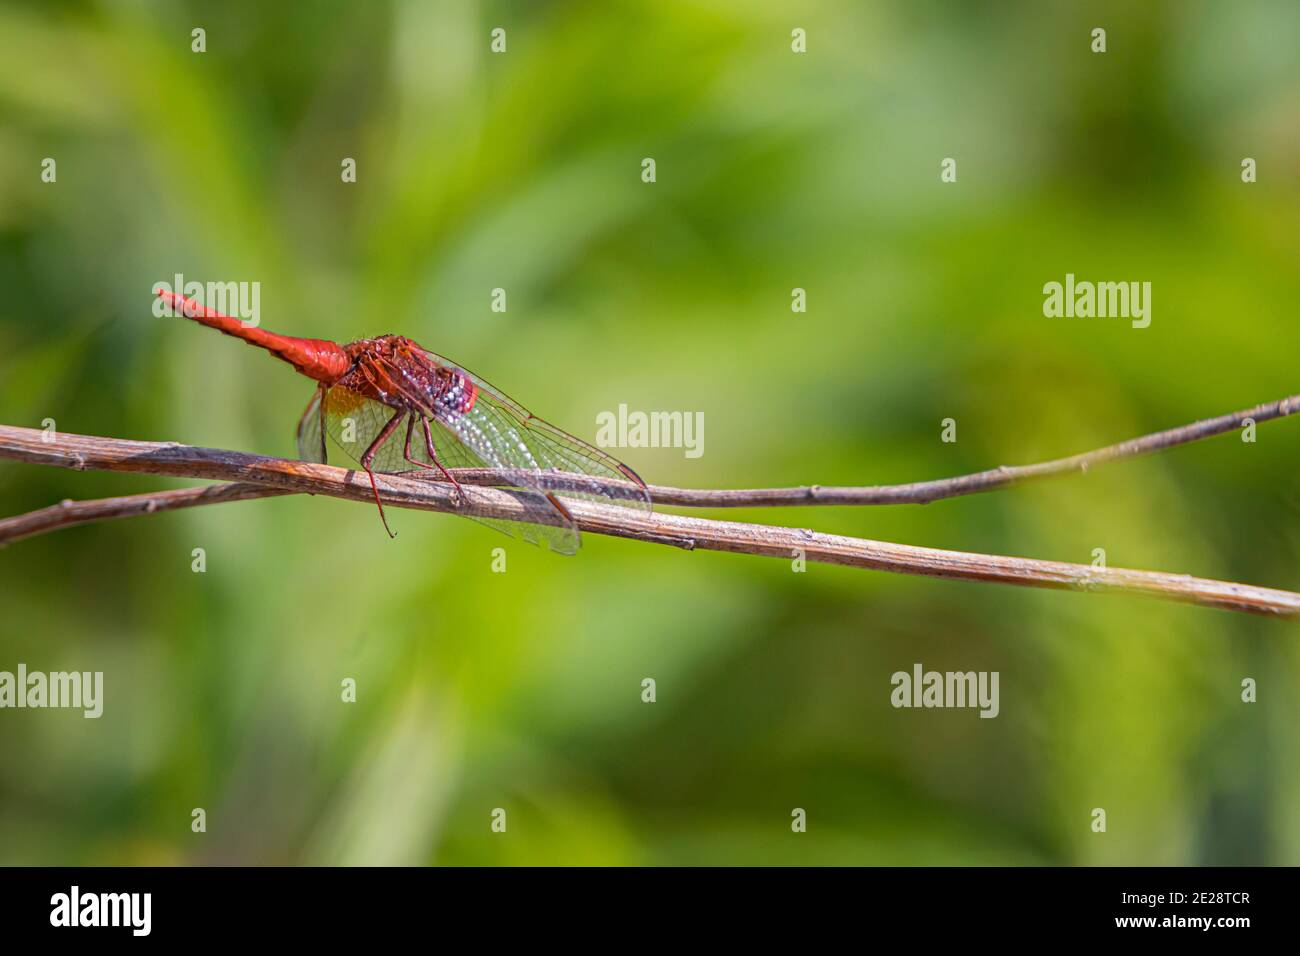 Broad Scarlet, Common Scarlet-darter, Scarlet Darter, Scarlet Dragonfly (Crocothemis erythraea, Croccothemis erythraea), male sits on a blade of grass Stock Photo